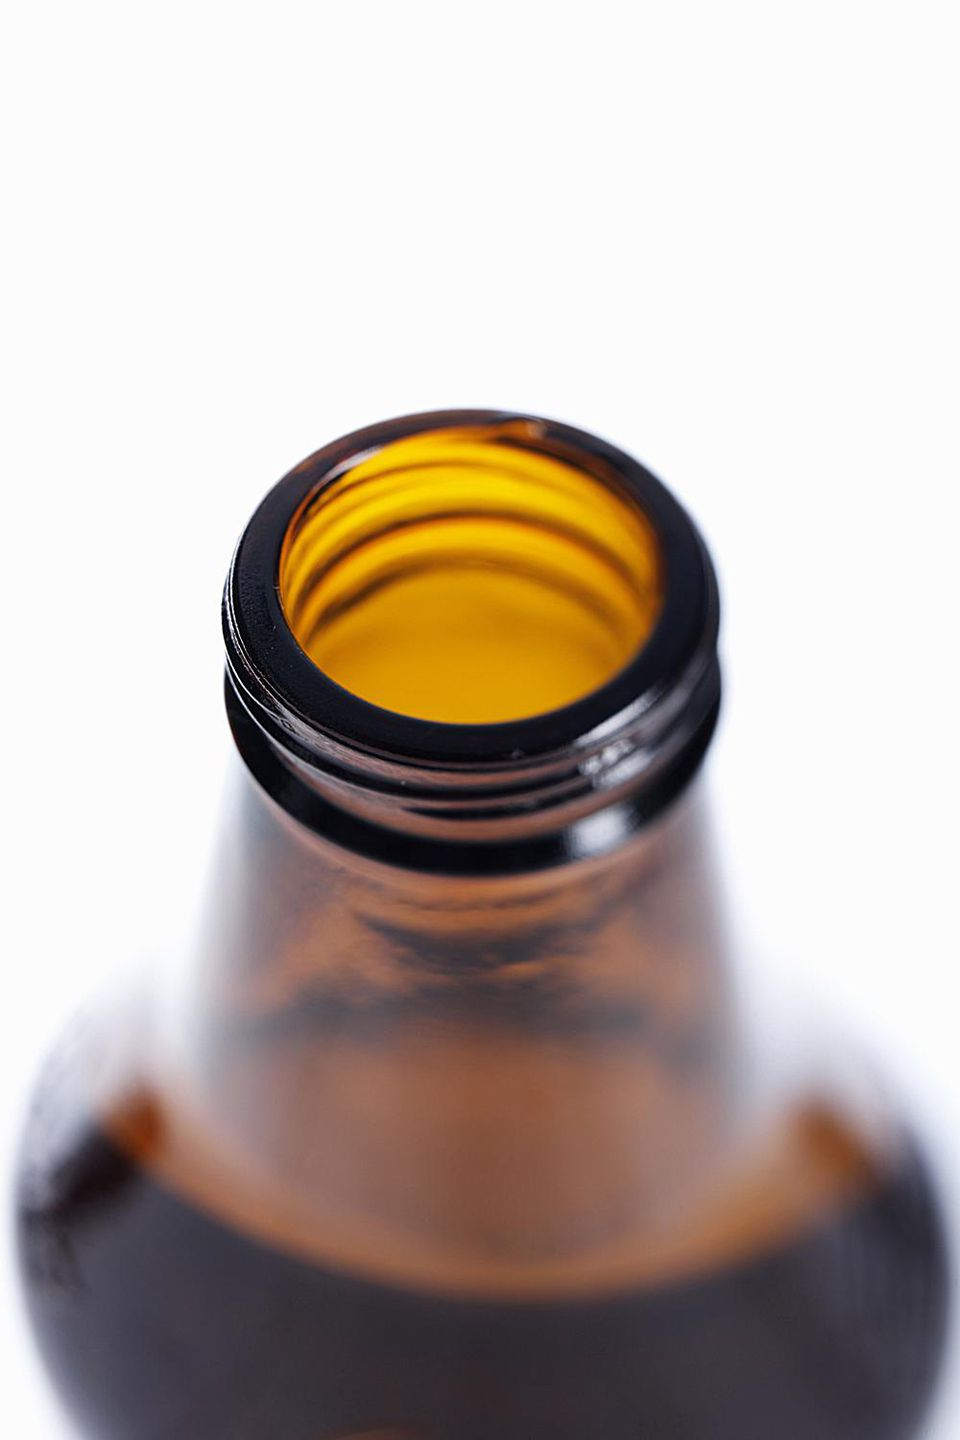 Elevated View of a brown open Beer Bottle